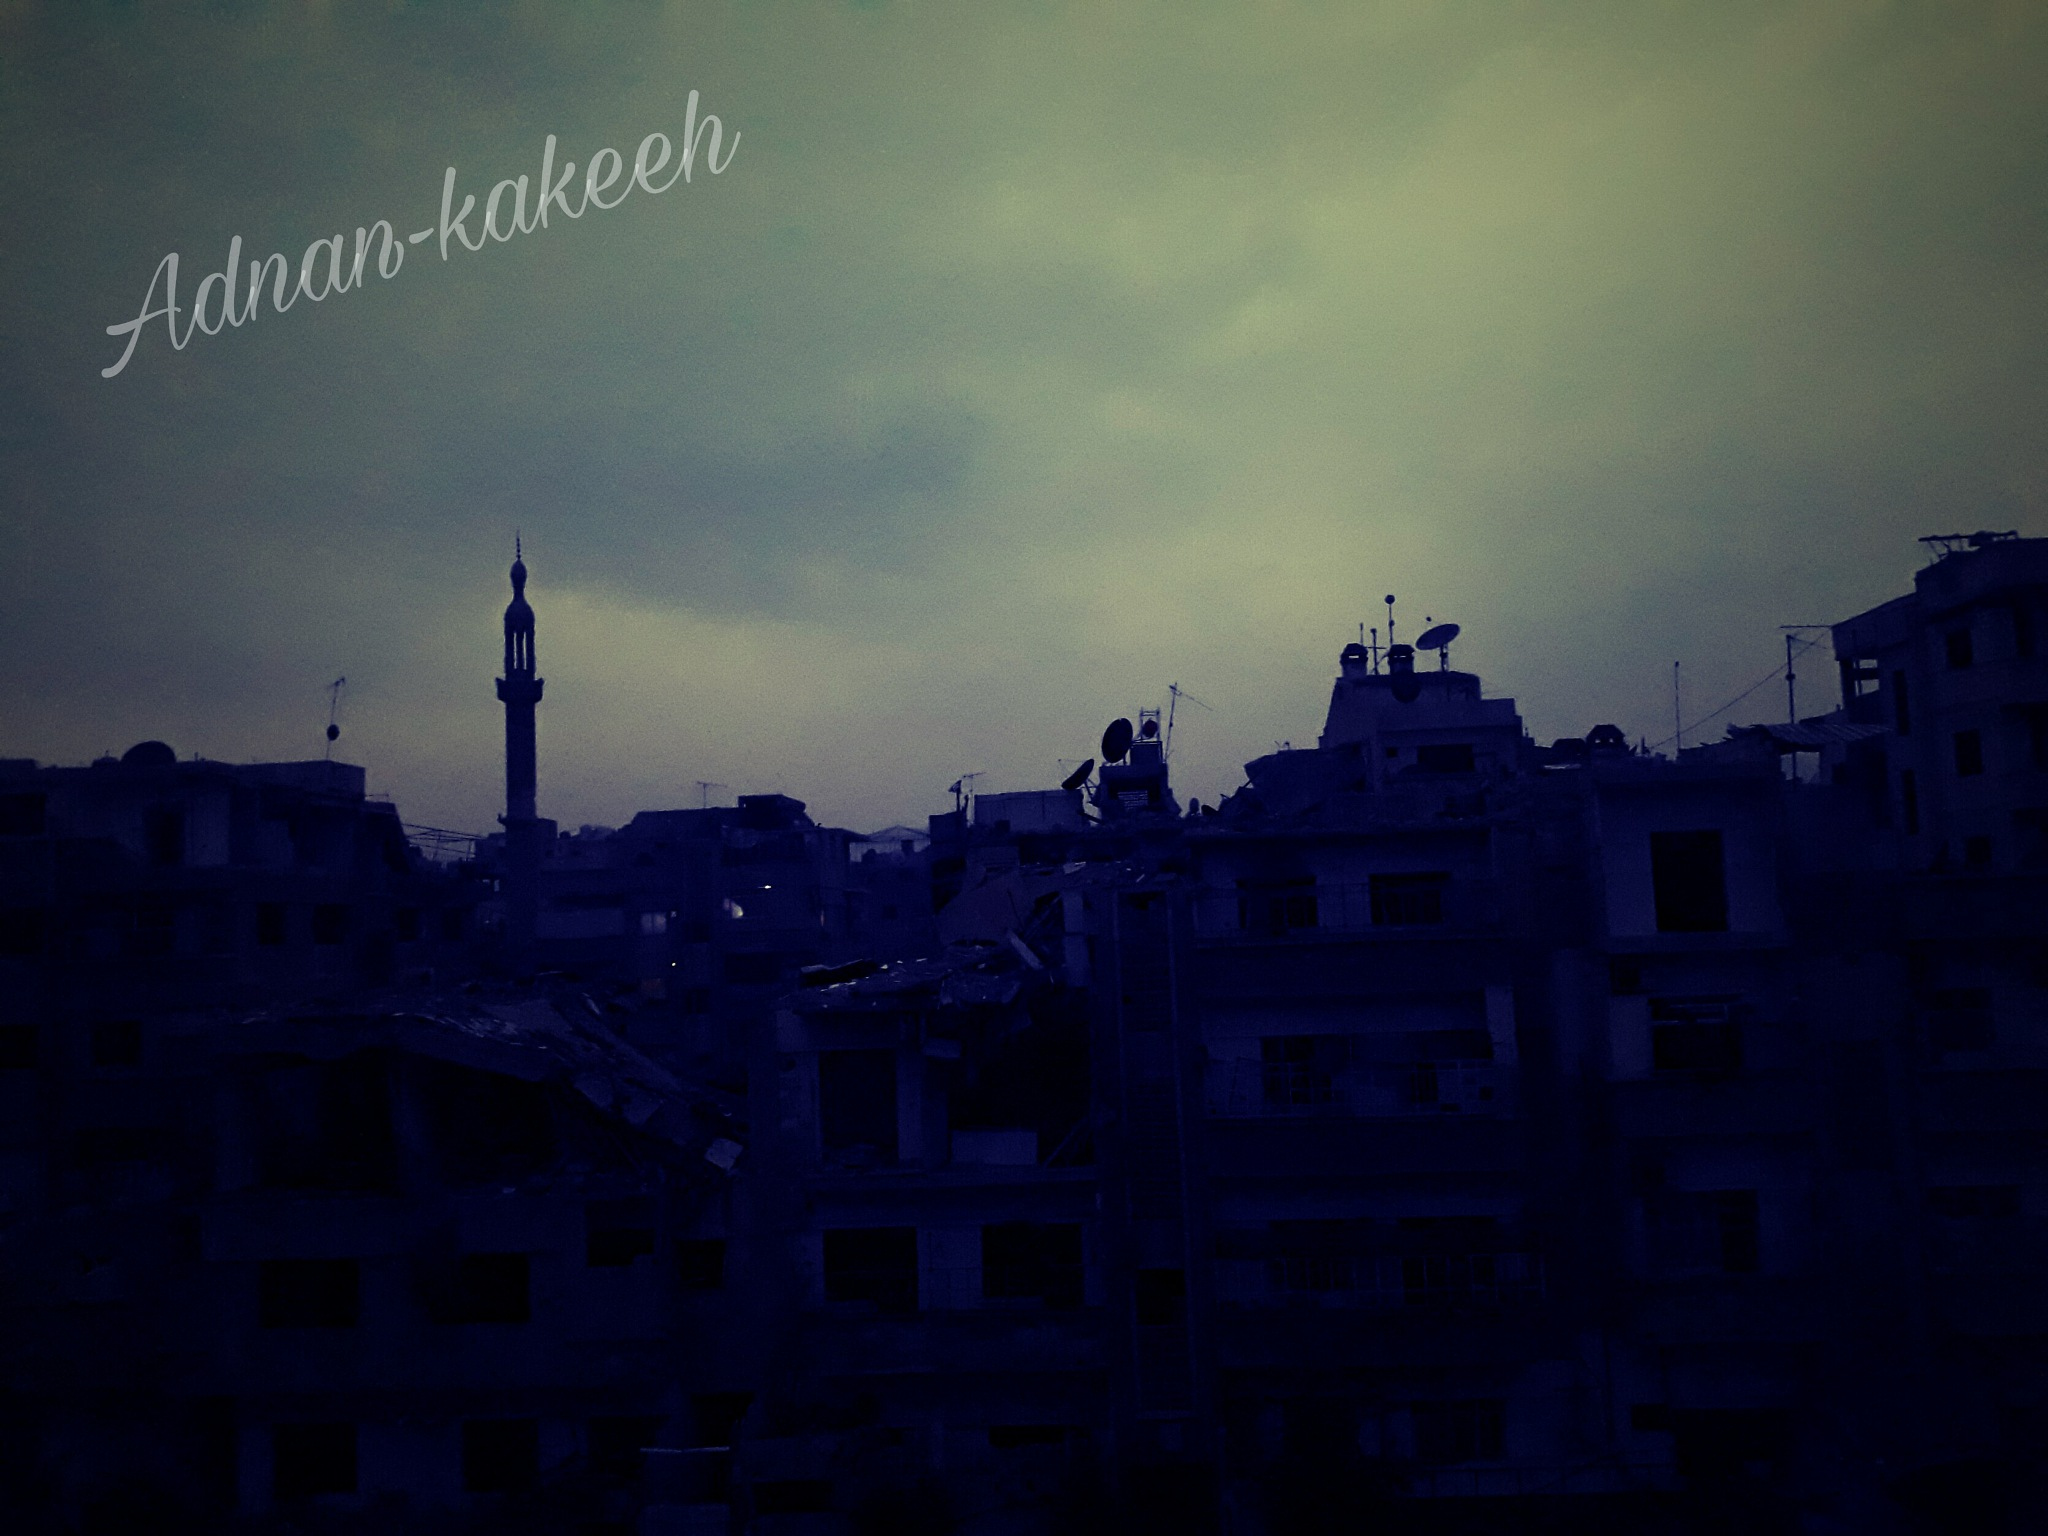 douma city by Adnan Kakeeh